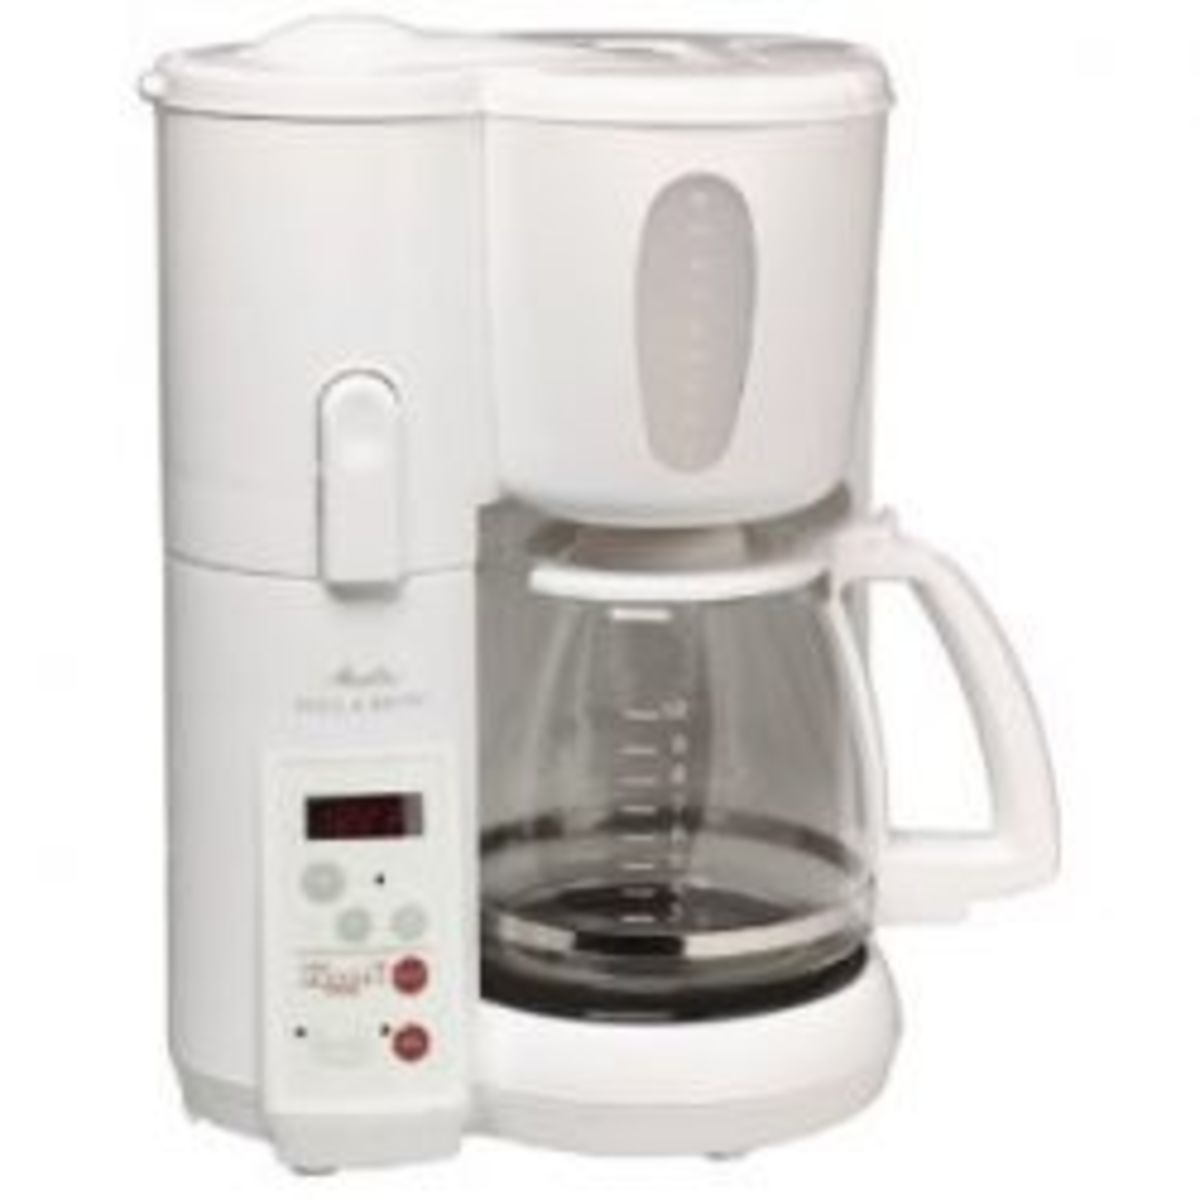 Melitta Coffee Maker Not Working : Ode to My Melitta Mill and Brew HubPages